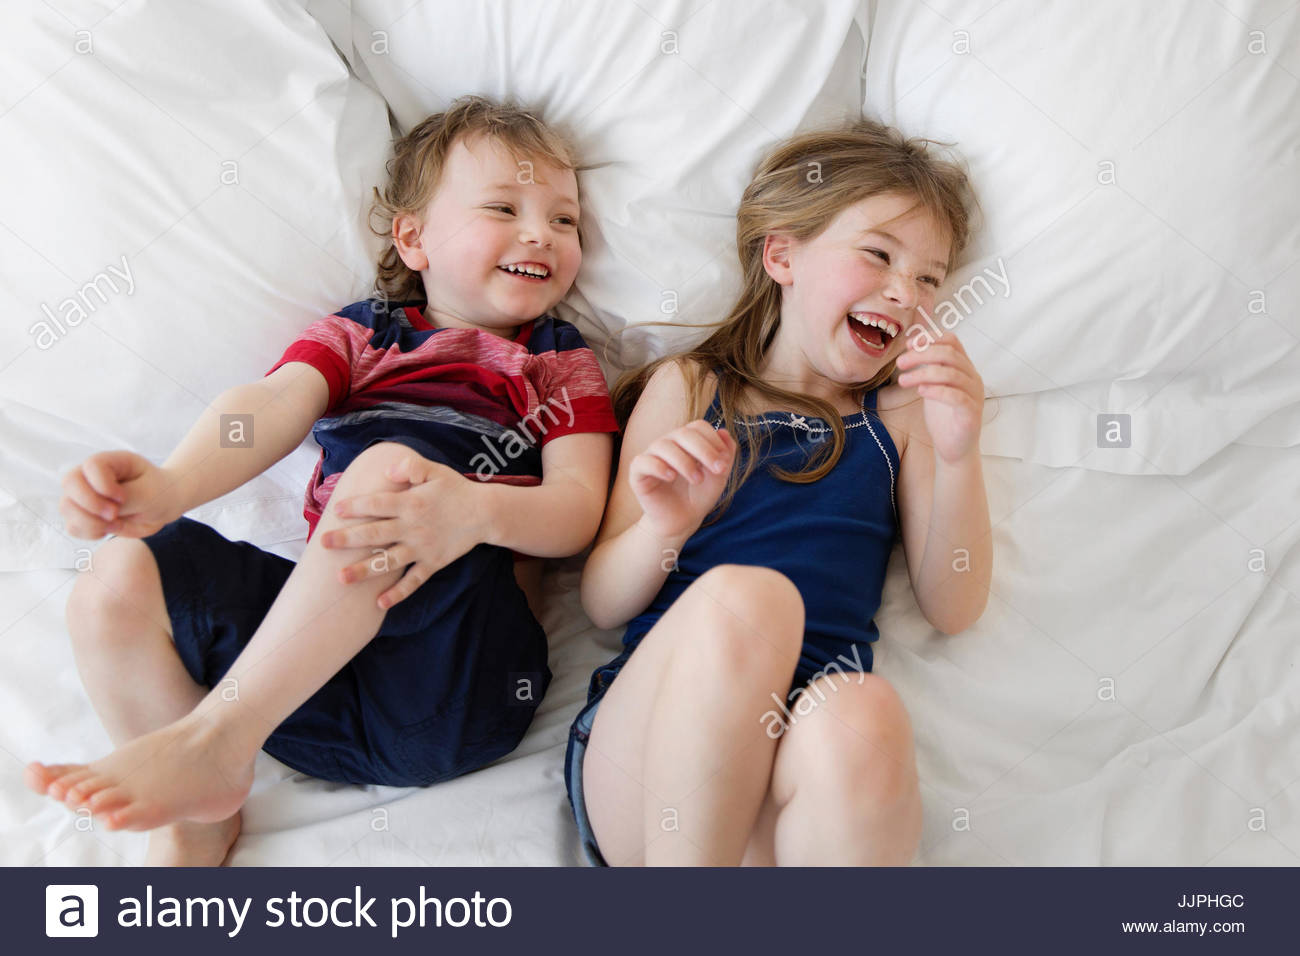 A six year old girl and four year old boy, brother and sister lying on a bed looking up at the camera, laughing. - Stock Image